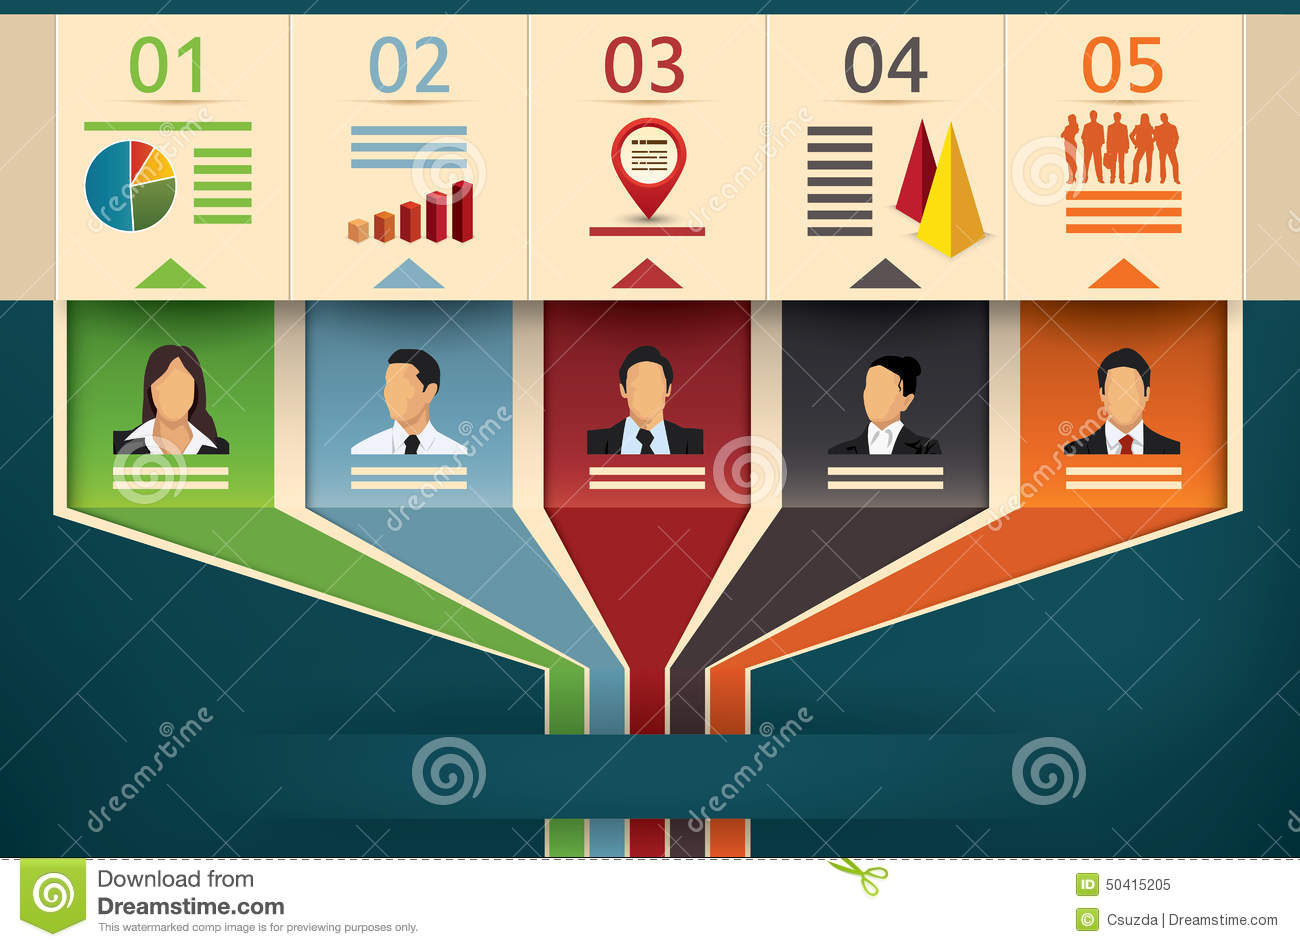 Business flow chart of a team or management stock vector business flow chart of a team or management geenschuldenfo Choice Image